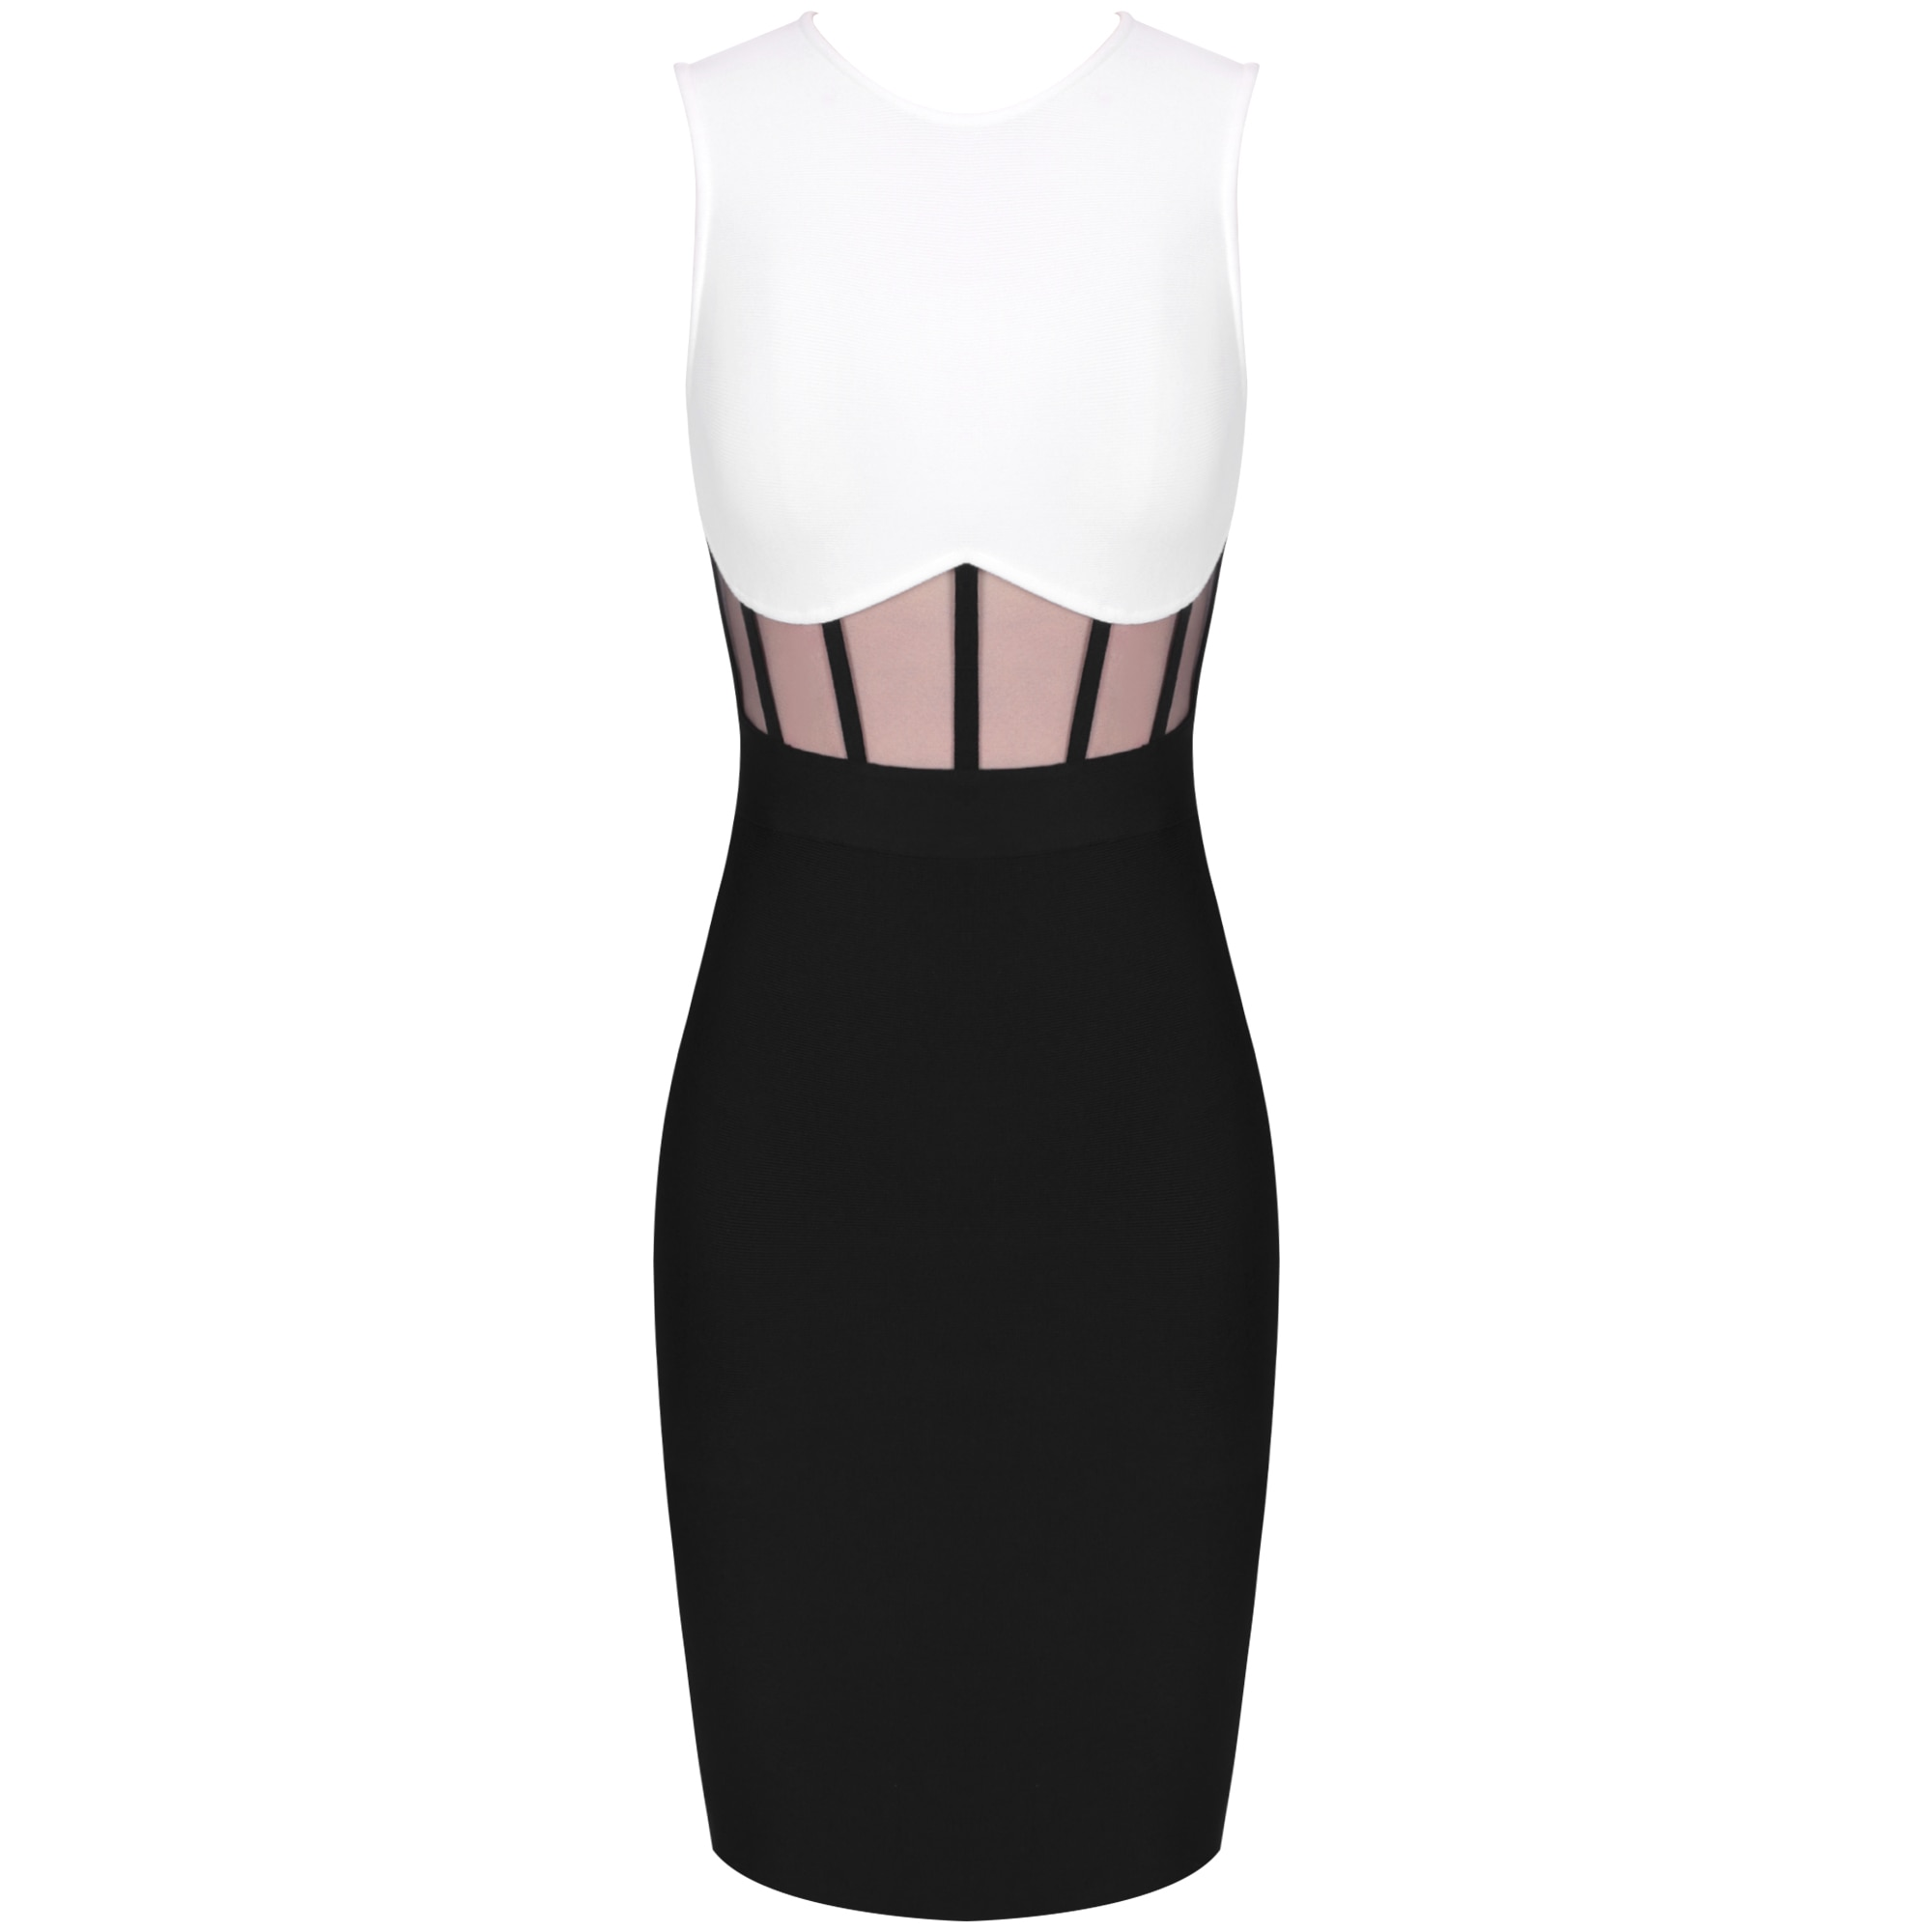 Ocstrade Bandage Dress 2021 Black White Bandage Dress Bodycon Summer Mesh Insert Sexy Party Dress Club Outfits for Women Dresses  5